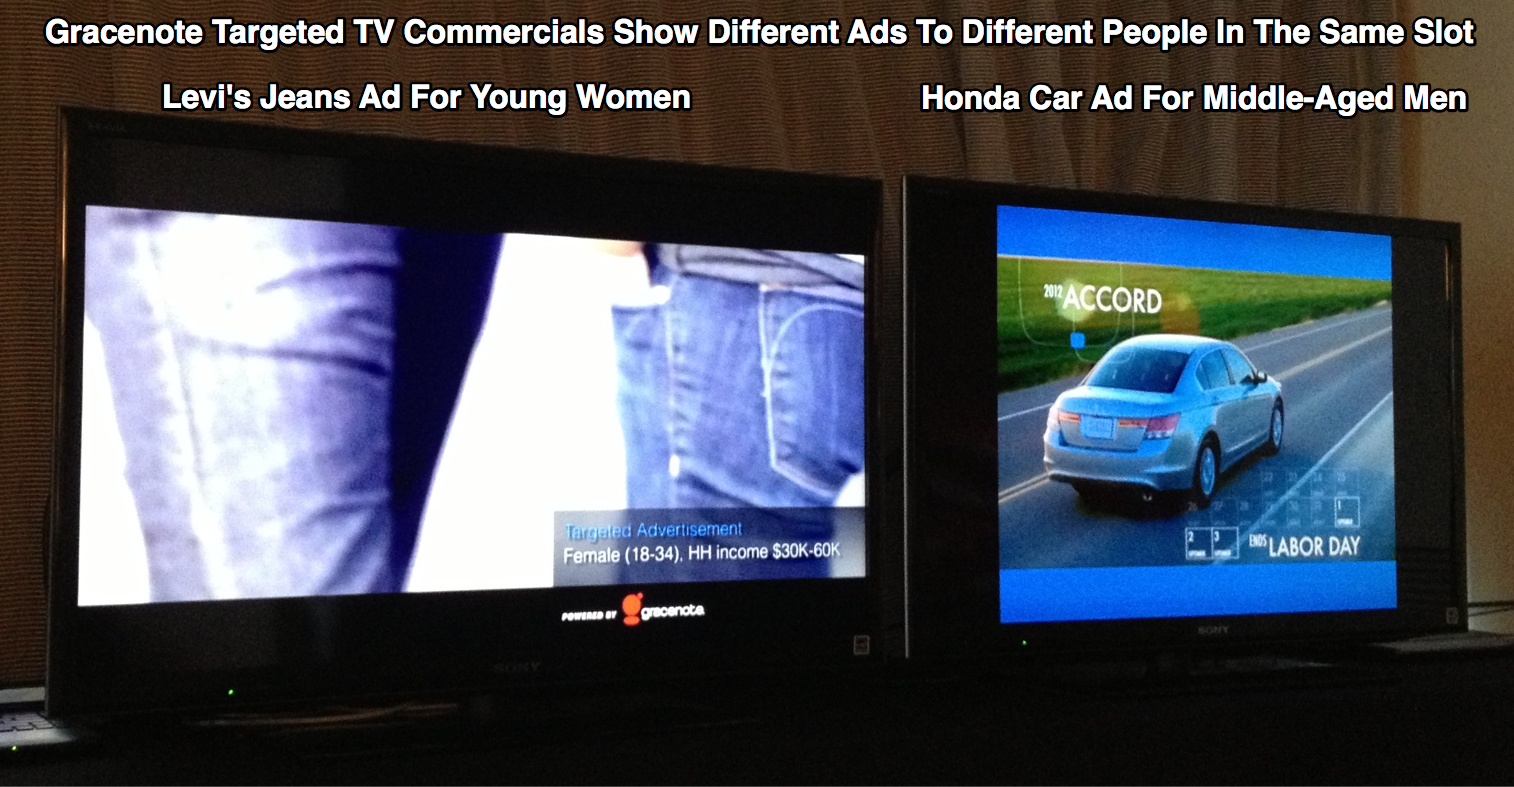 Gracenote Targeted Advertisements Levis Honda